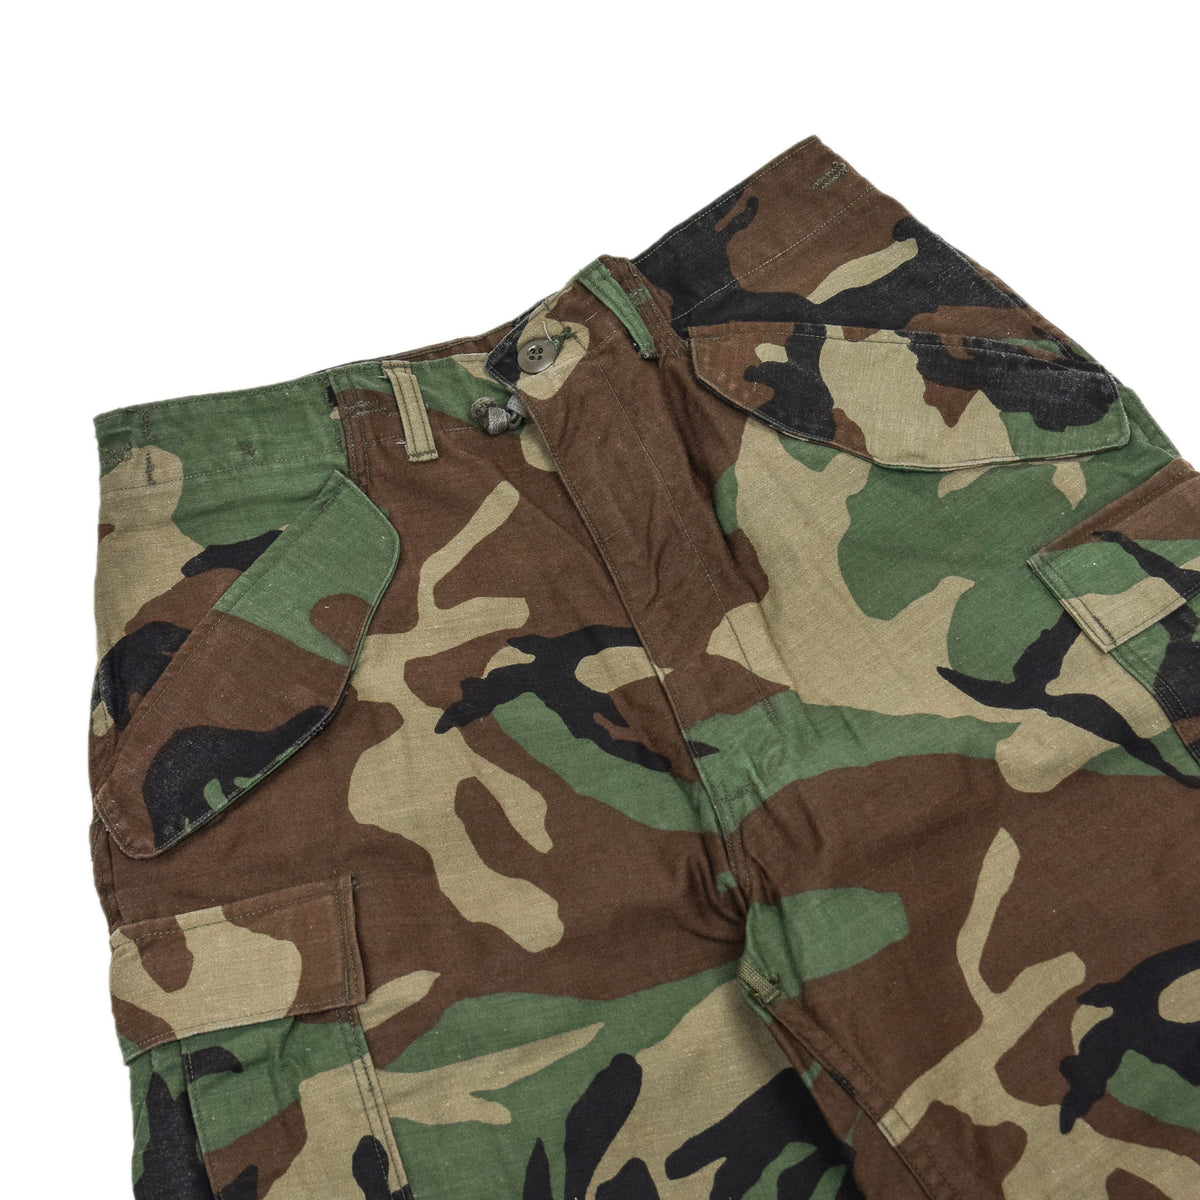 Vintage 80s US Army Camo Cold Weather Cargo Combat Field Trousers S Reg waistband